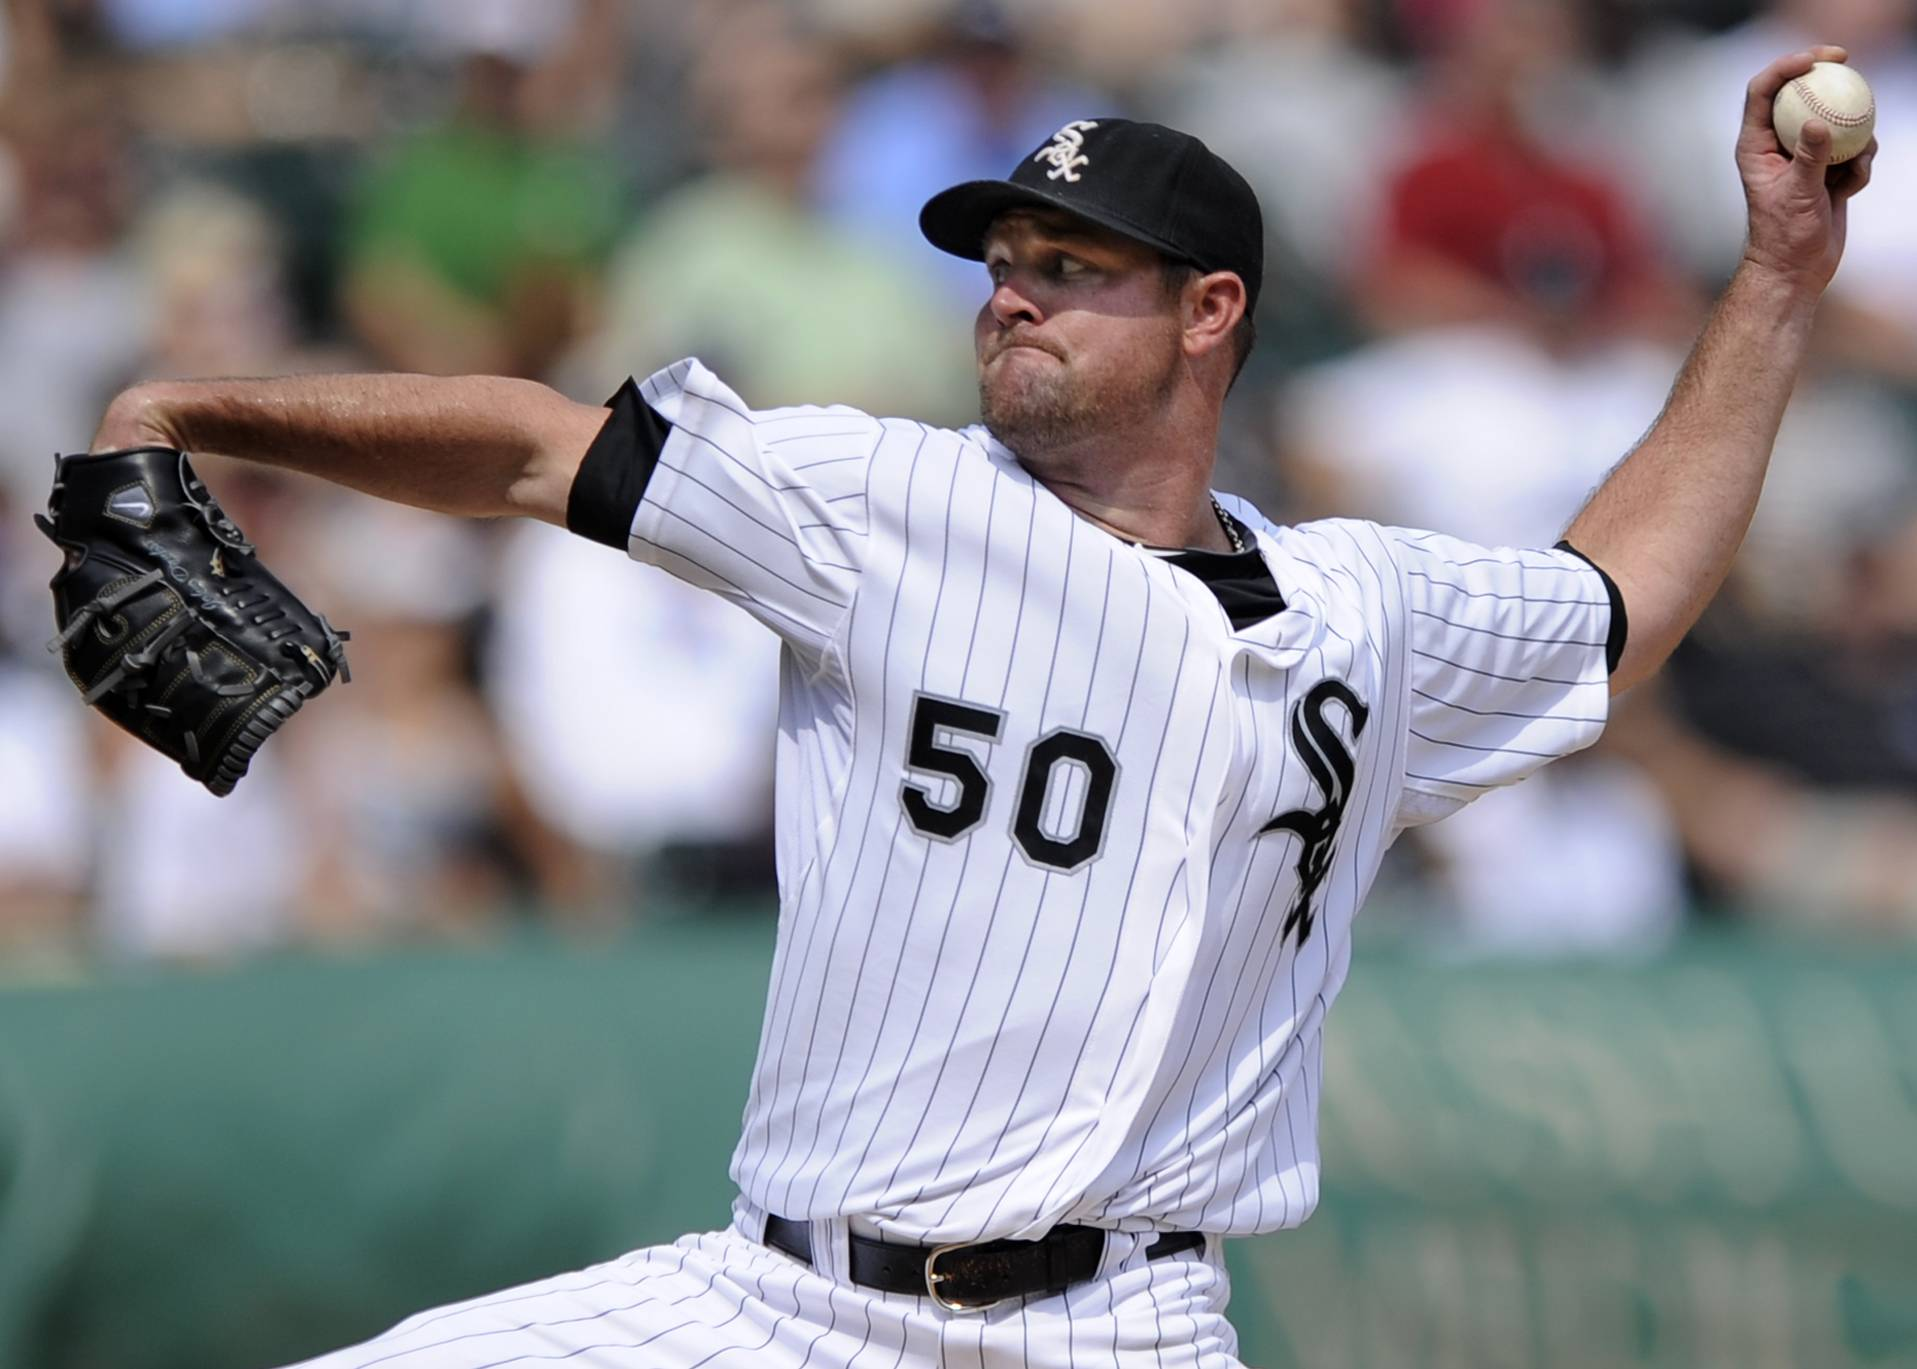 John Danks delivers a pitch during the fifth inning Wednesday at U.S. Cellular Field.